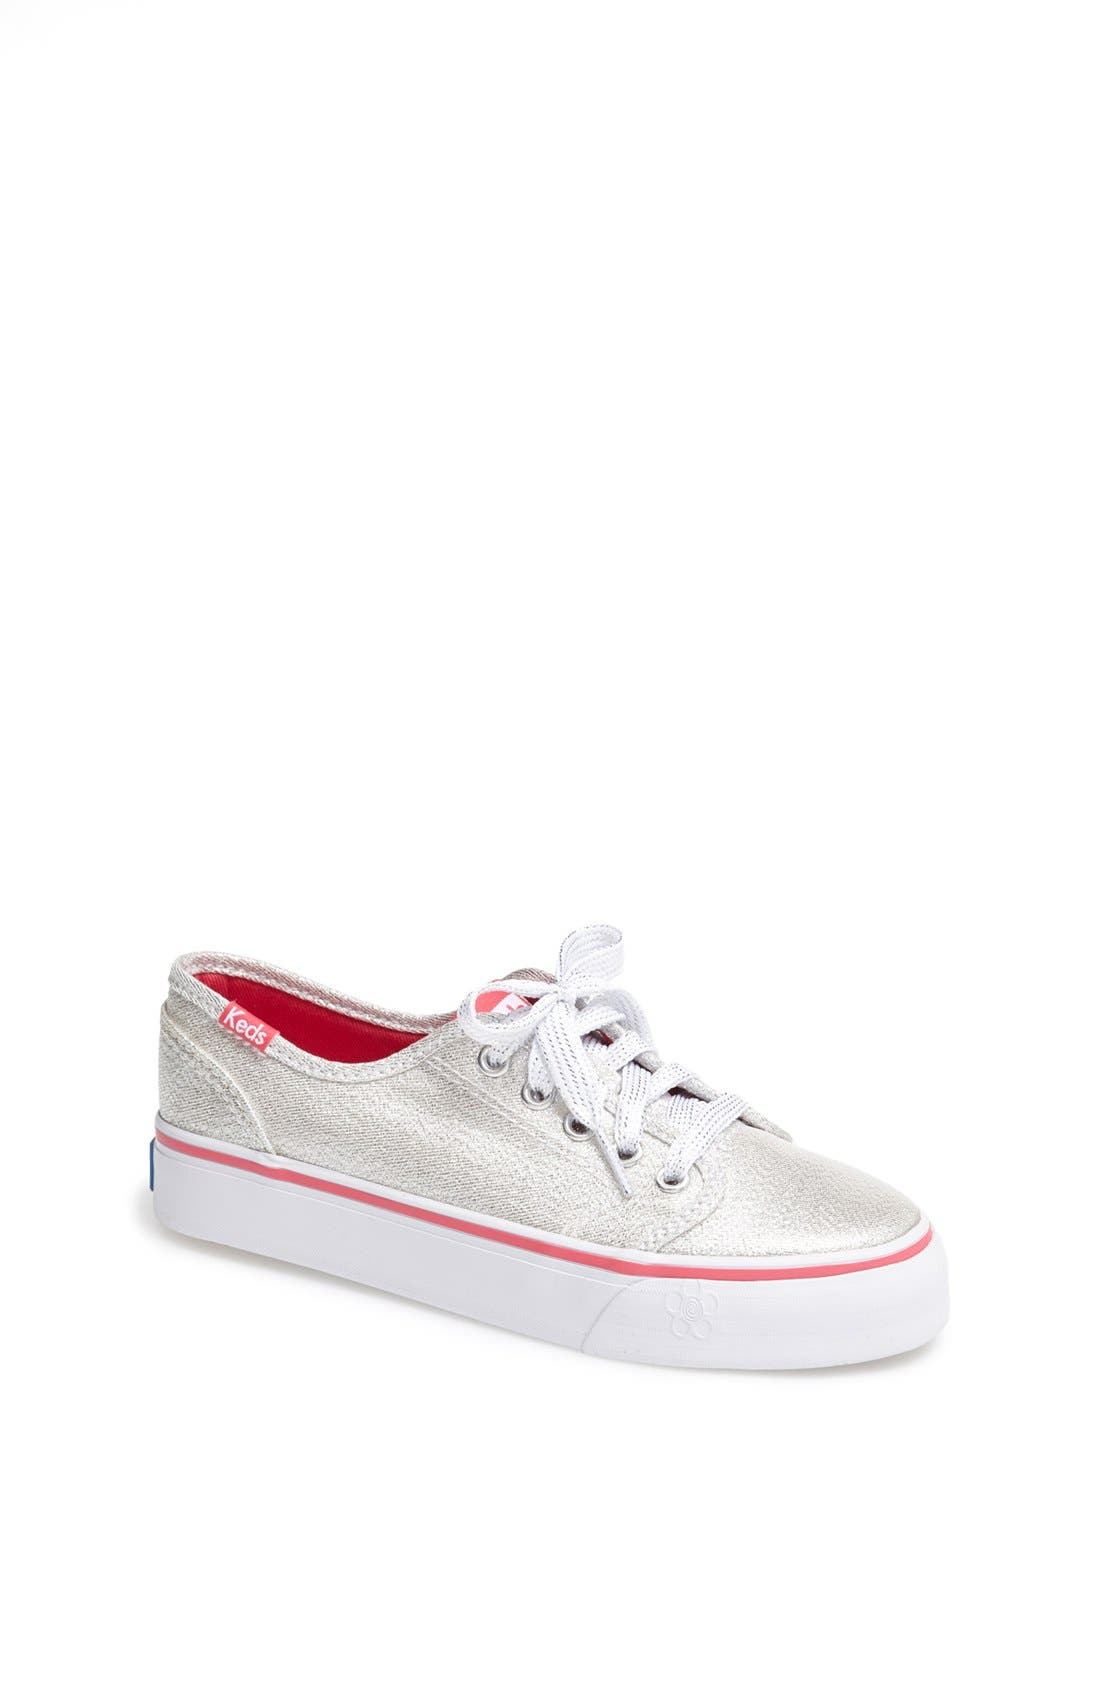 Main Image - Keds® 'Double Dutch Shimmer' Sneaker (Toddler, Little Kid & Big Kid)